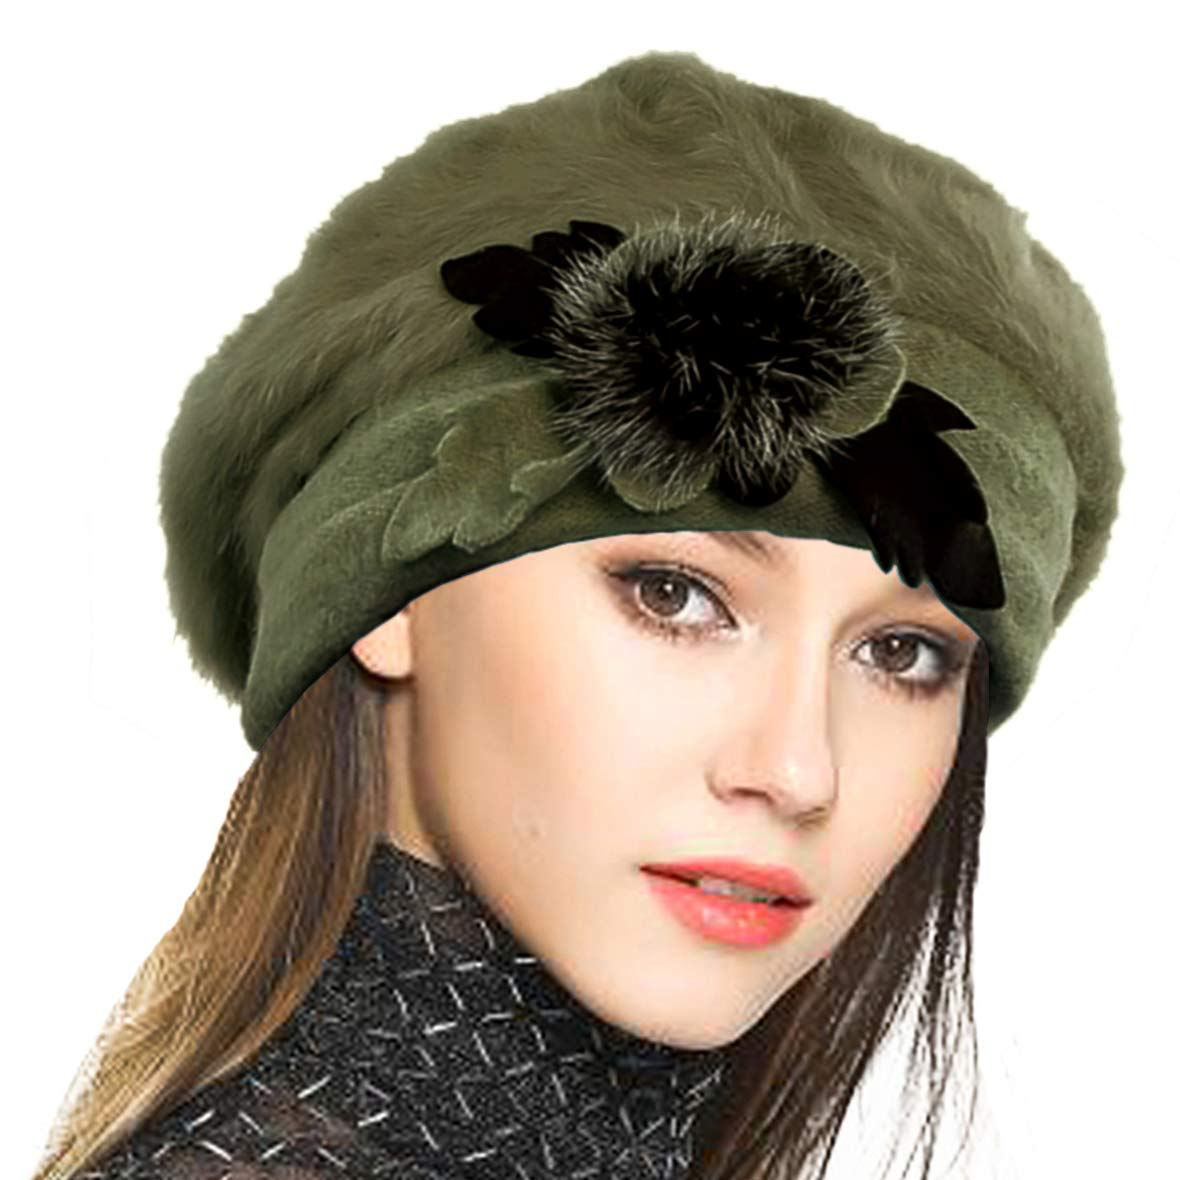 VECRY Women's 100% Wool Bucket Hat Felt Cloche Beret Dress Winter Beanie Hats (Angora-Green) by VECRY